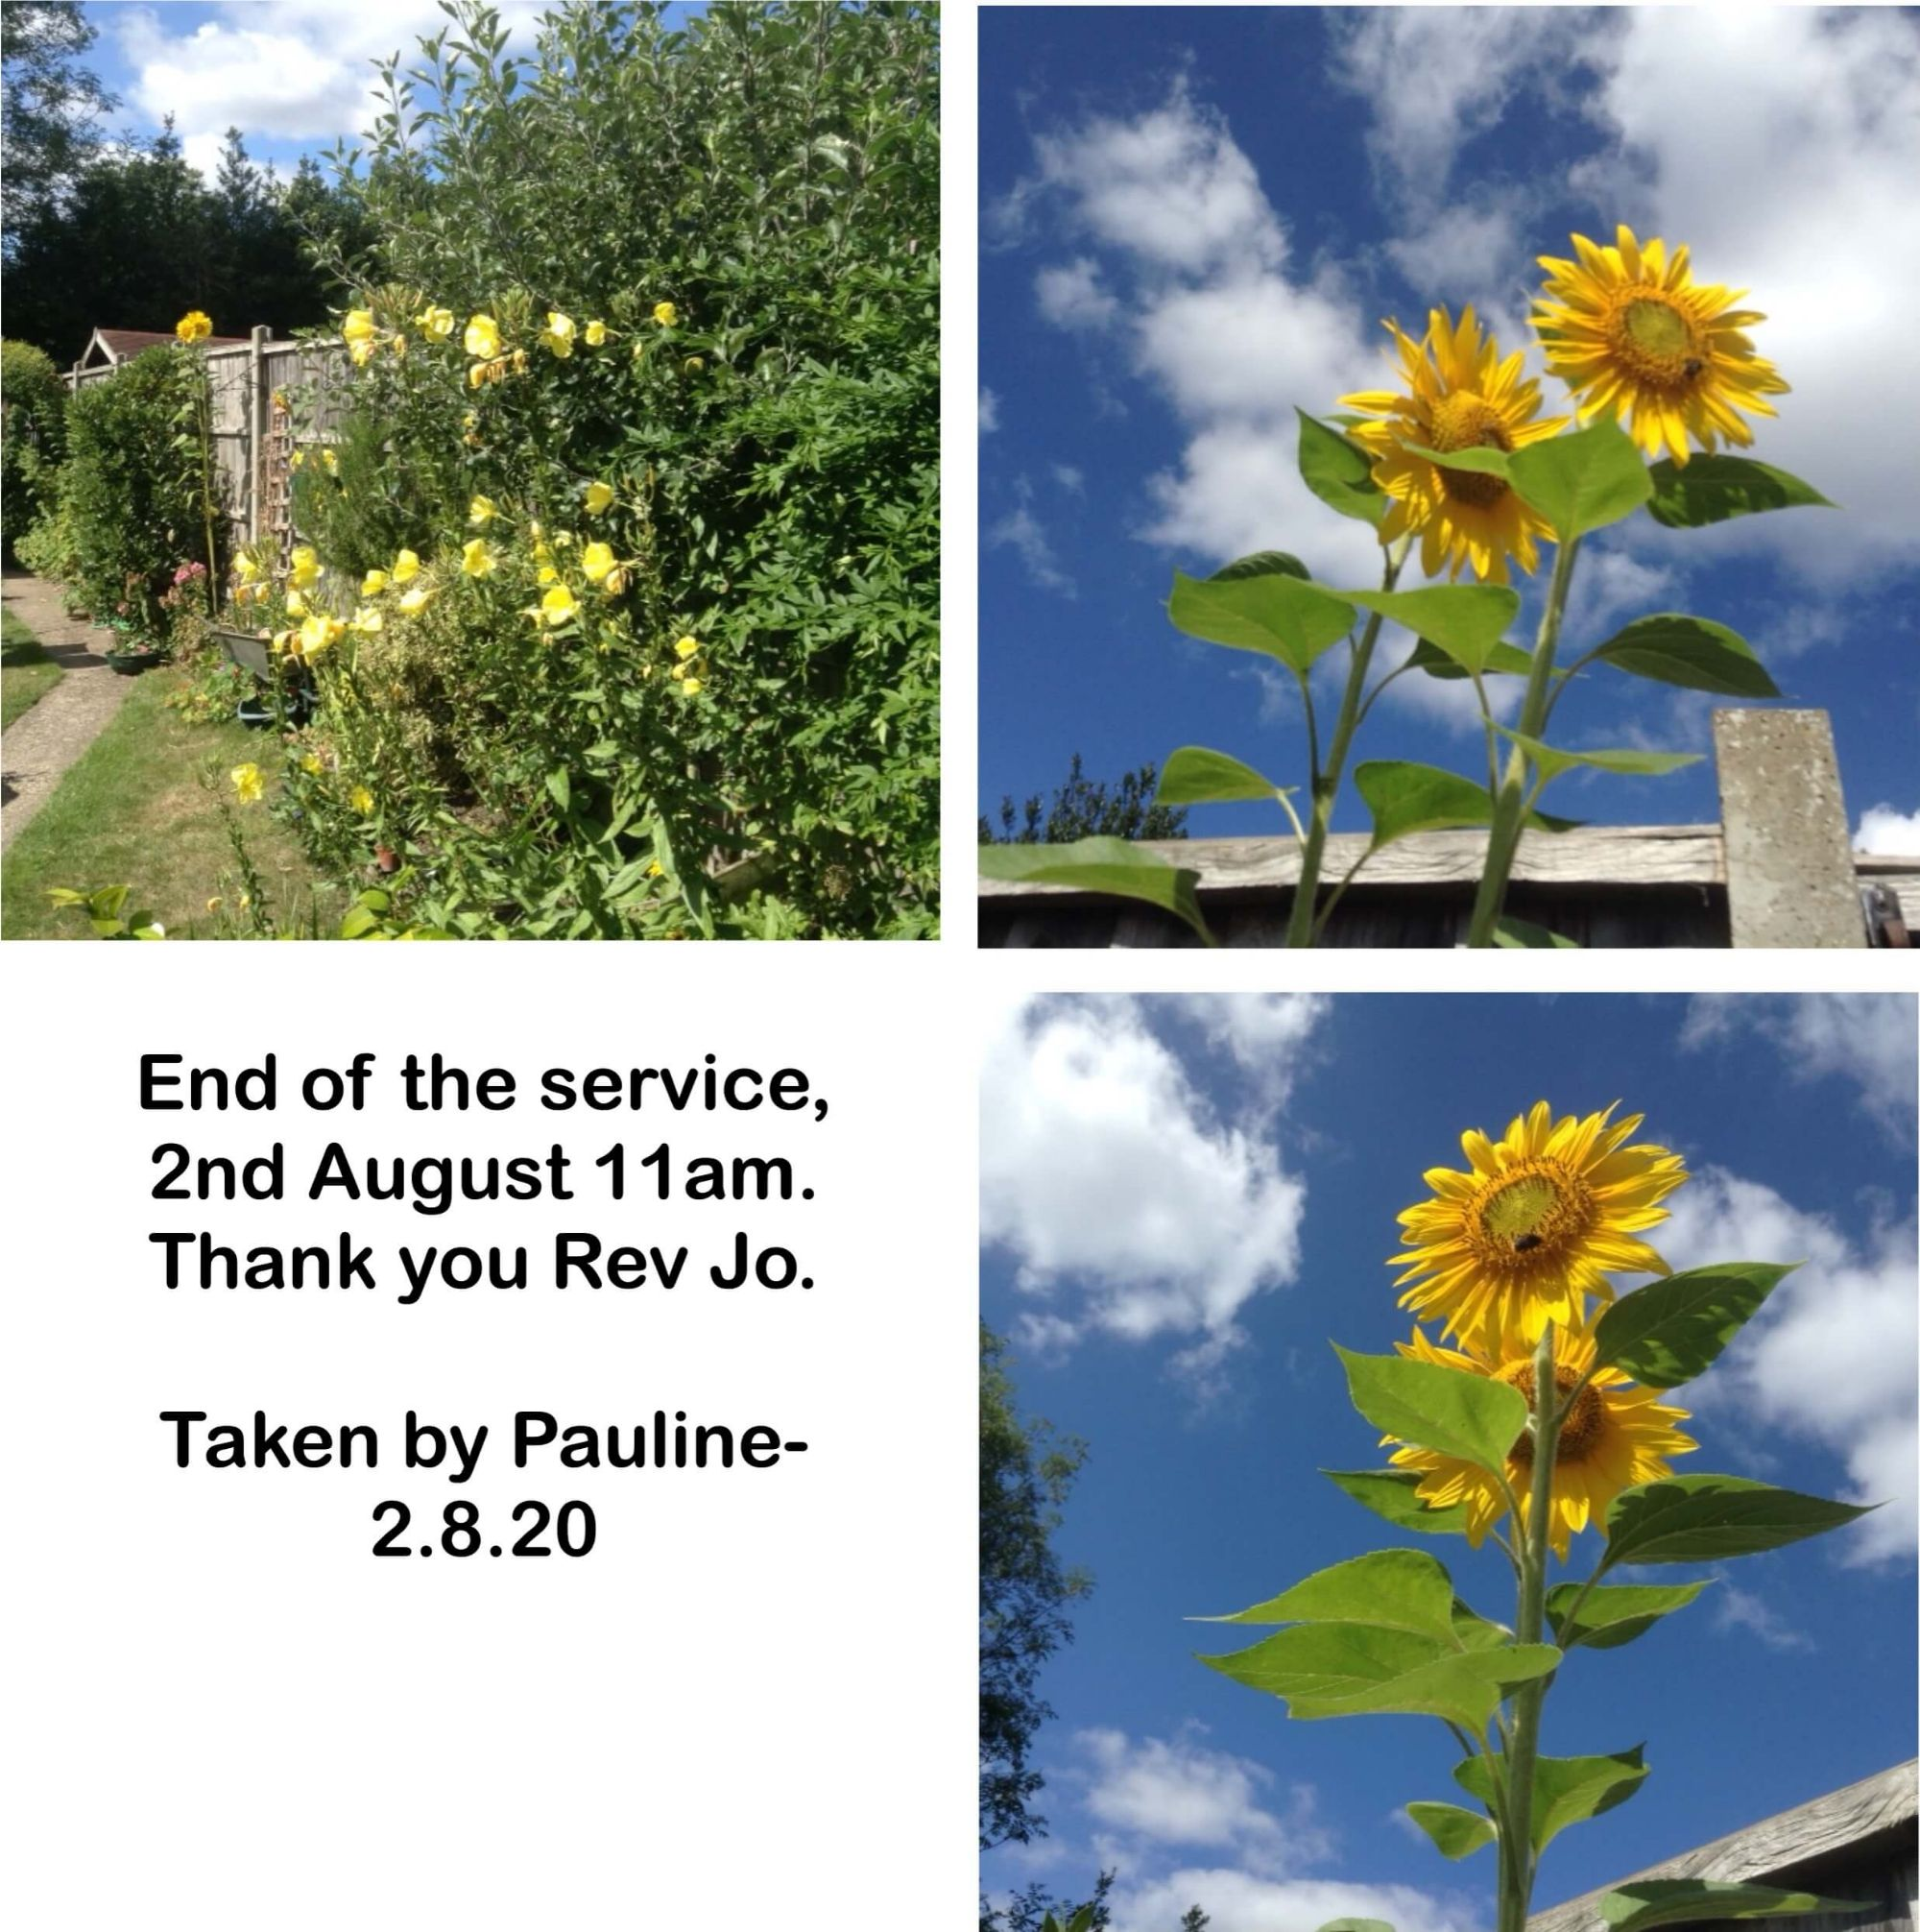 End of the service, 2nd August 11am. Thank you Rev Jo.